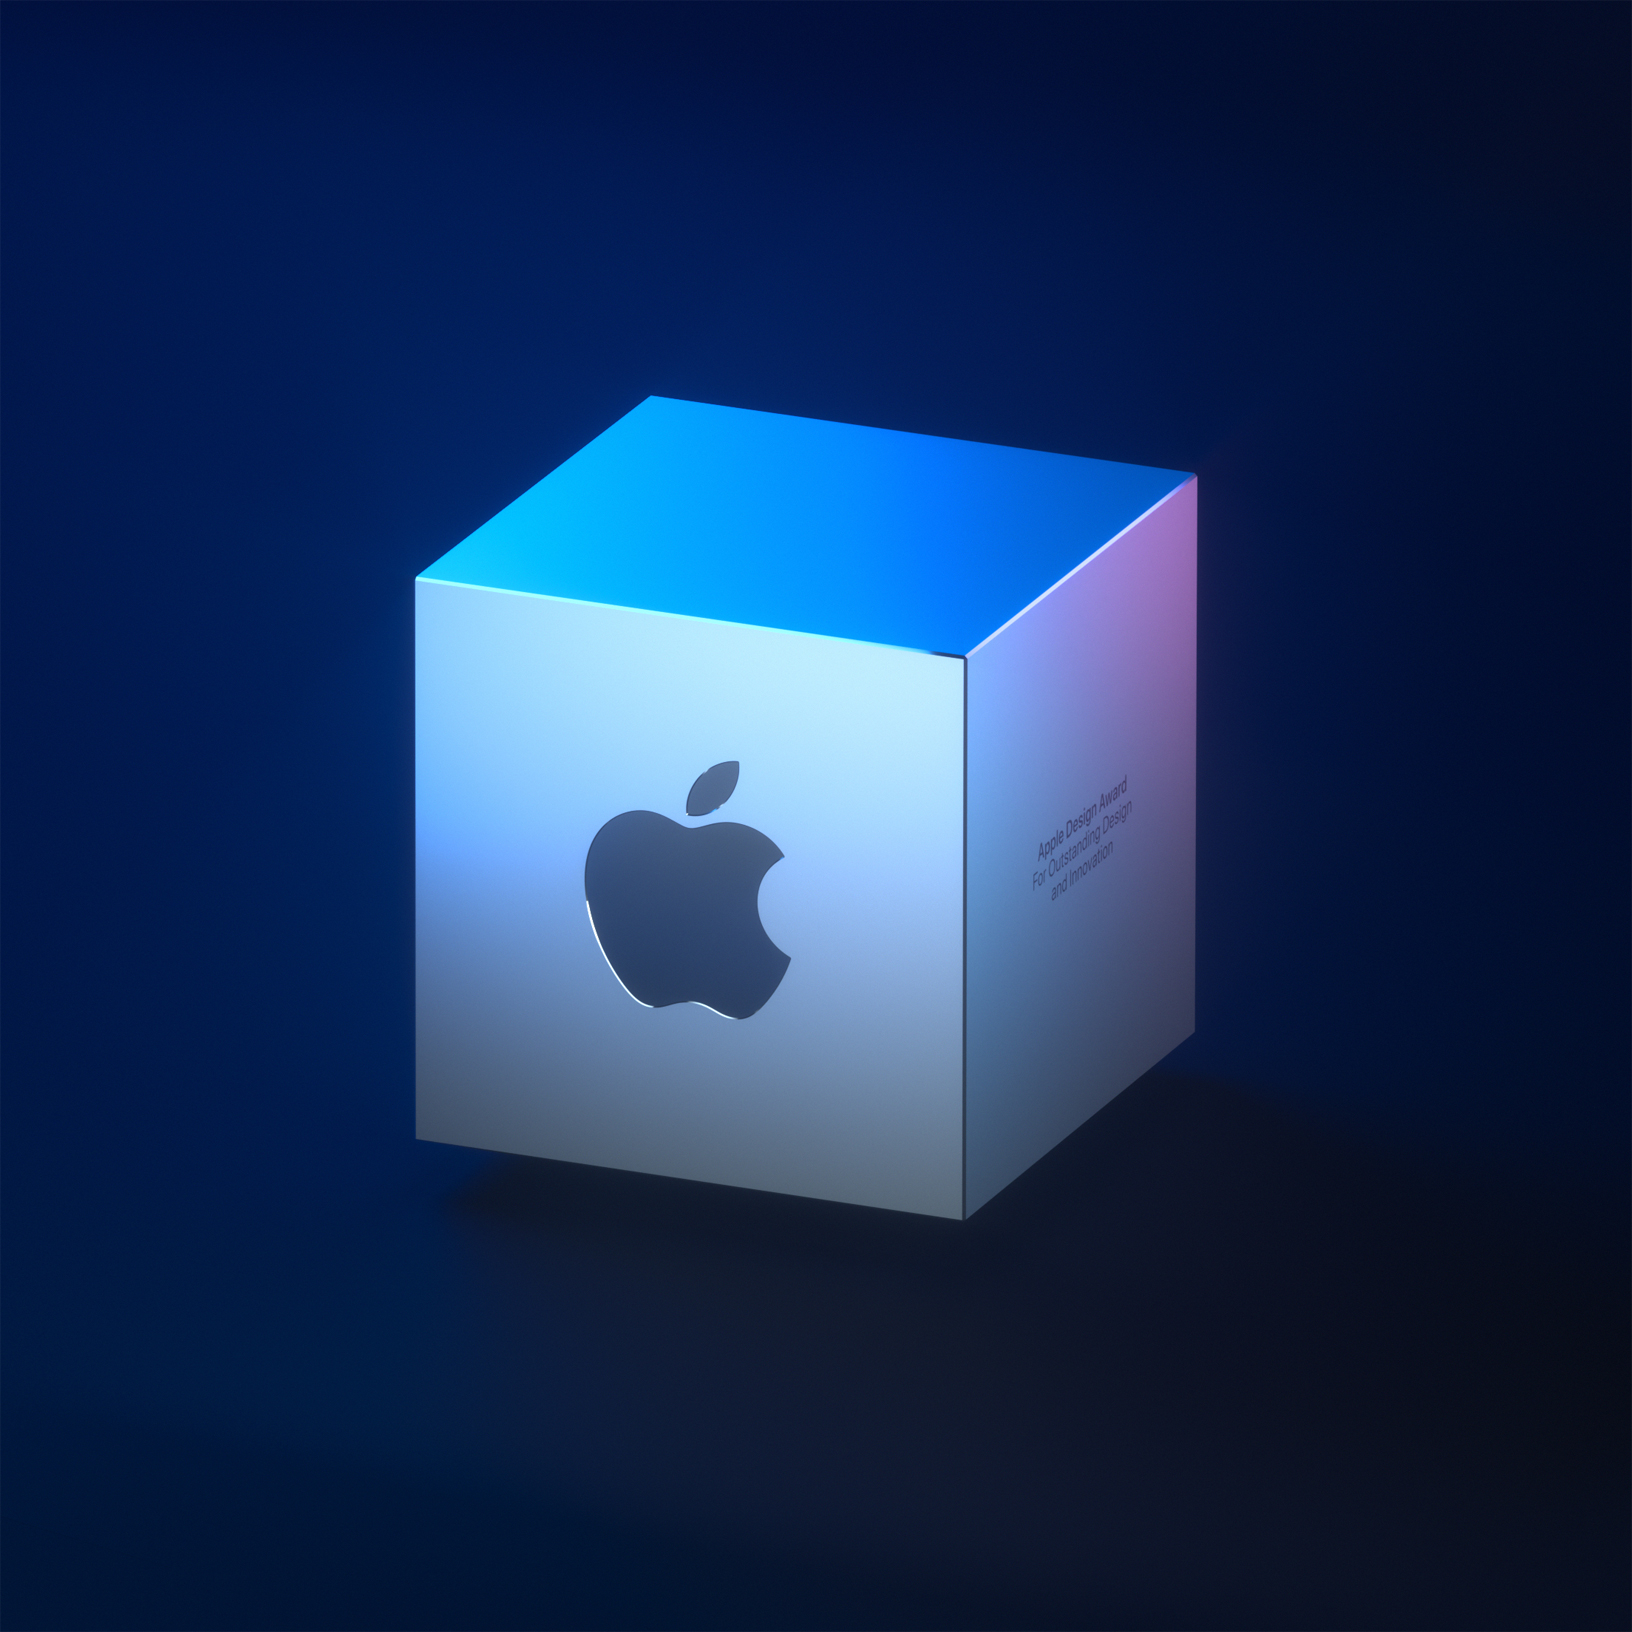 Banner de los Apple Design Awards 2019